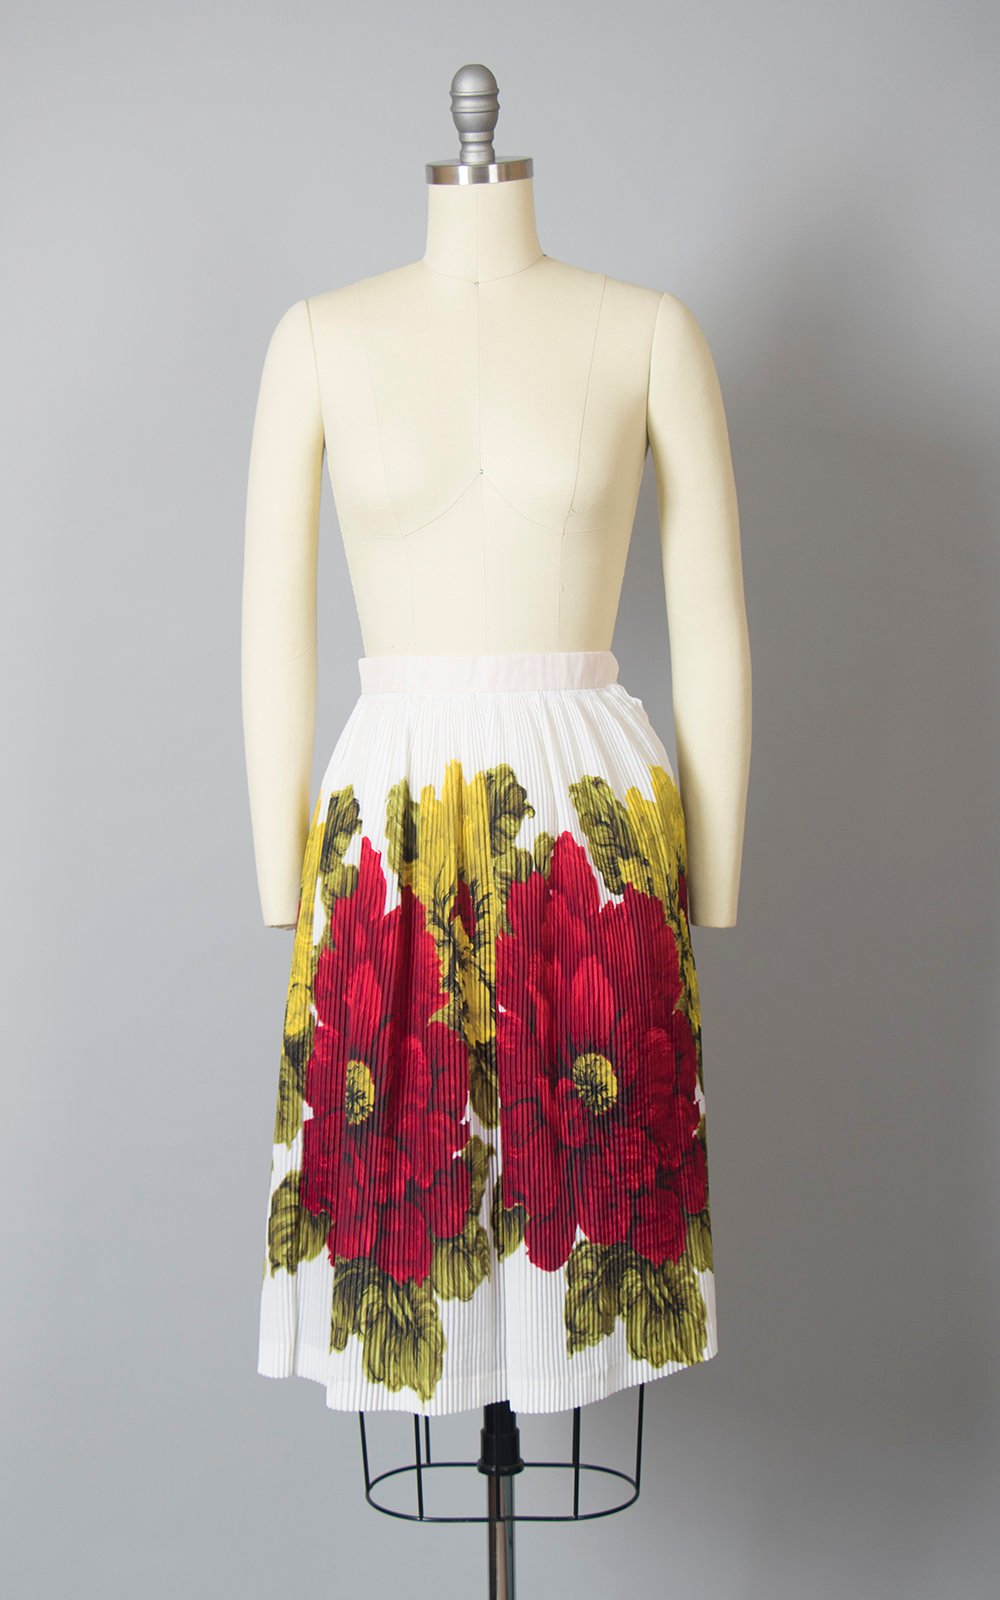 Vintage 1960s Skirt | 60s Oversized Floral Border Print Fortuny Pleated Red White Full Skirt (xxs/xs)